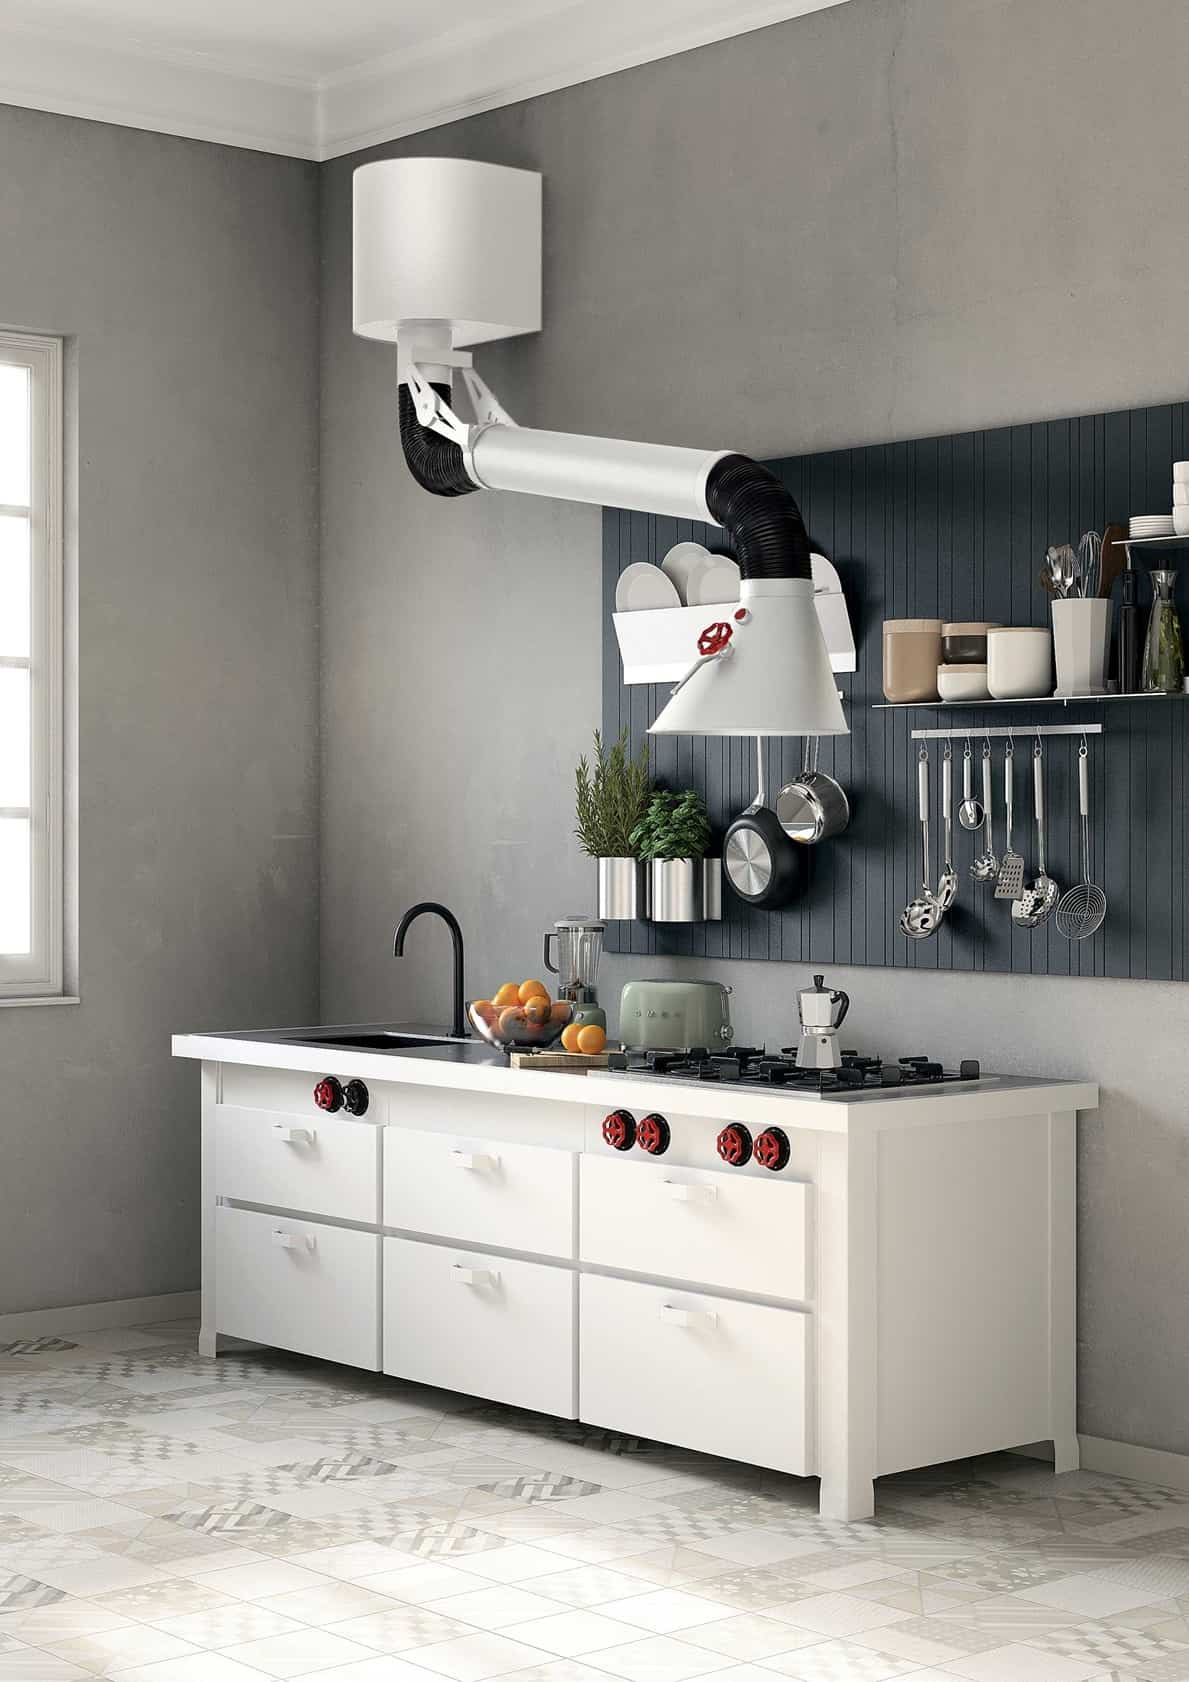 Best Kitchen Gallery: 2 Kitchens With Unusual Stove Hoods of Kitchen With Hood on rachelxblog.com